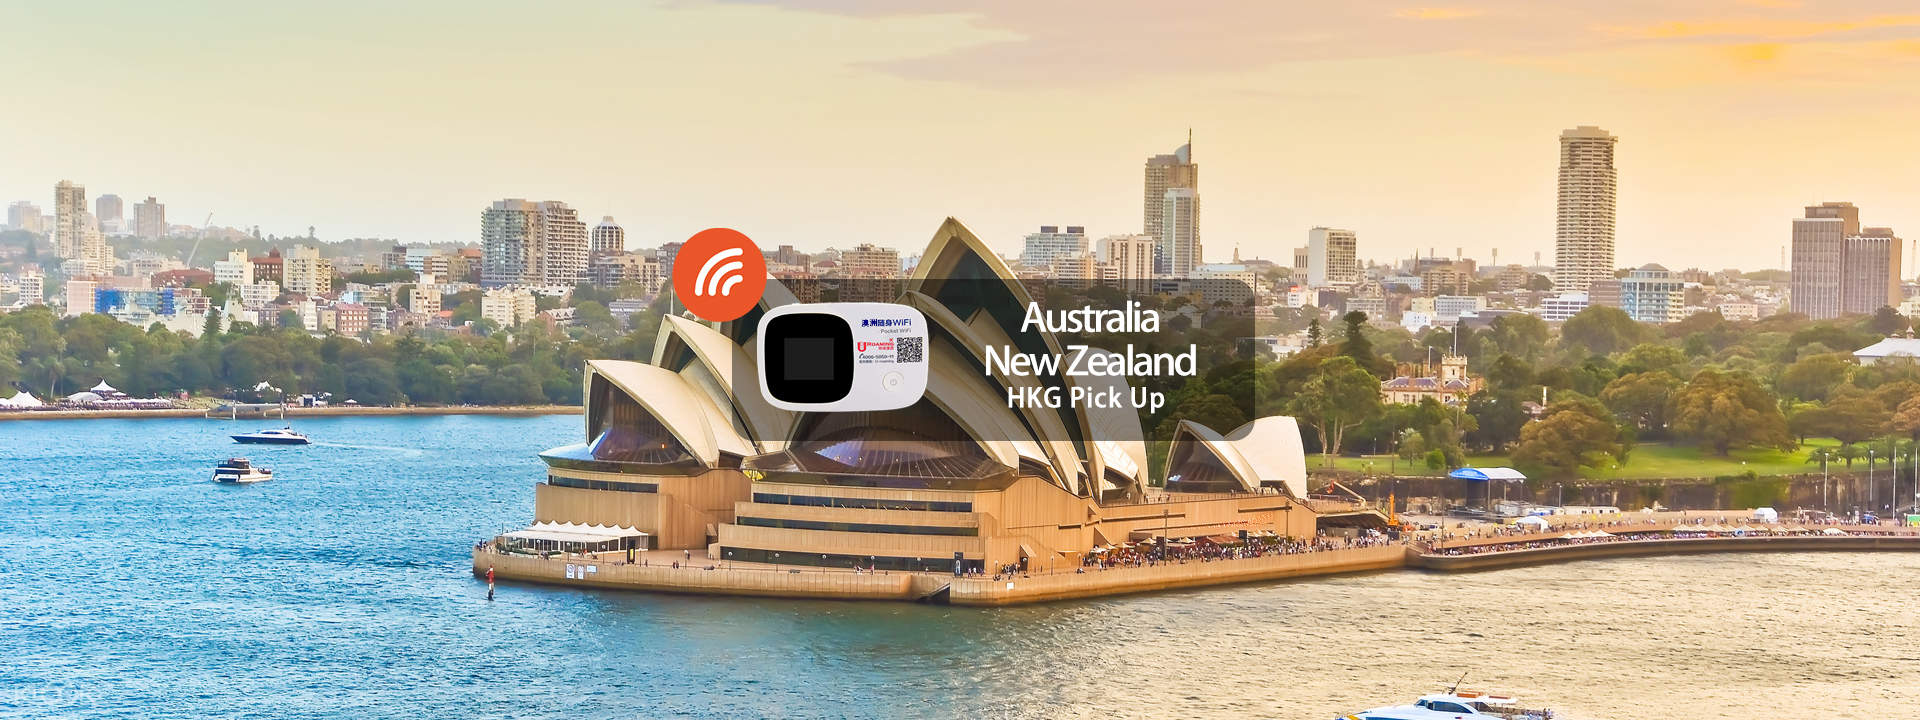 4G/3G WiFi (HKG Pick Up) for Australia/New Zealand with